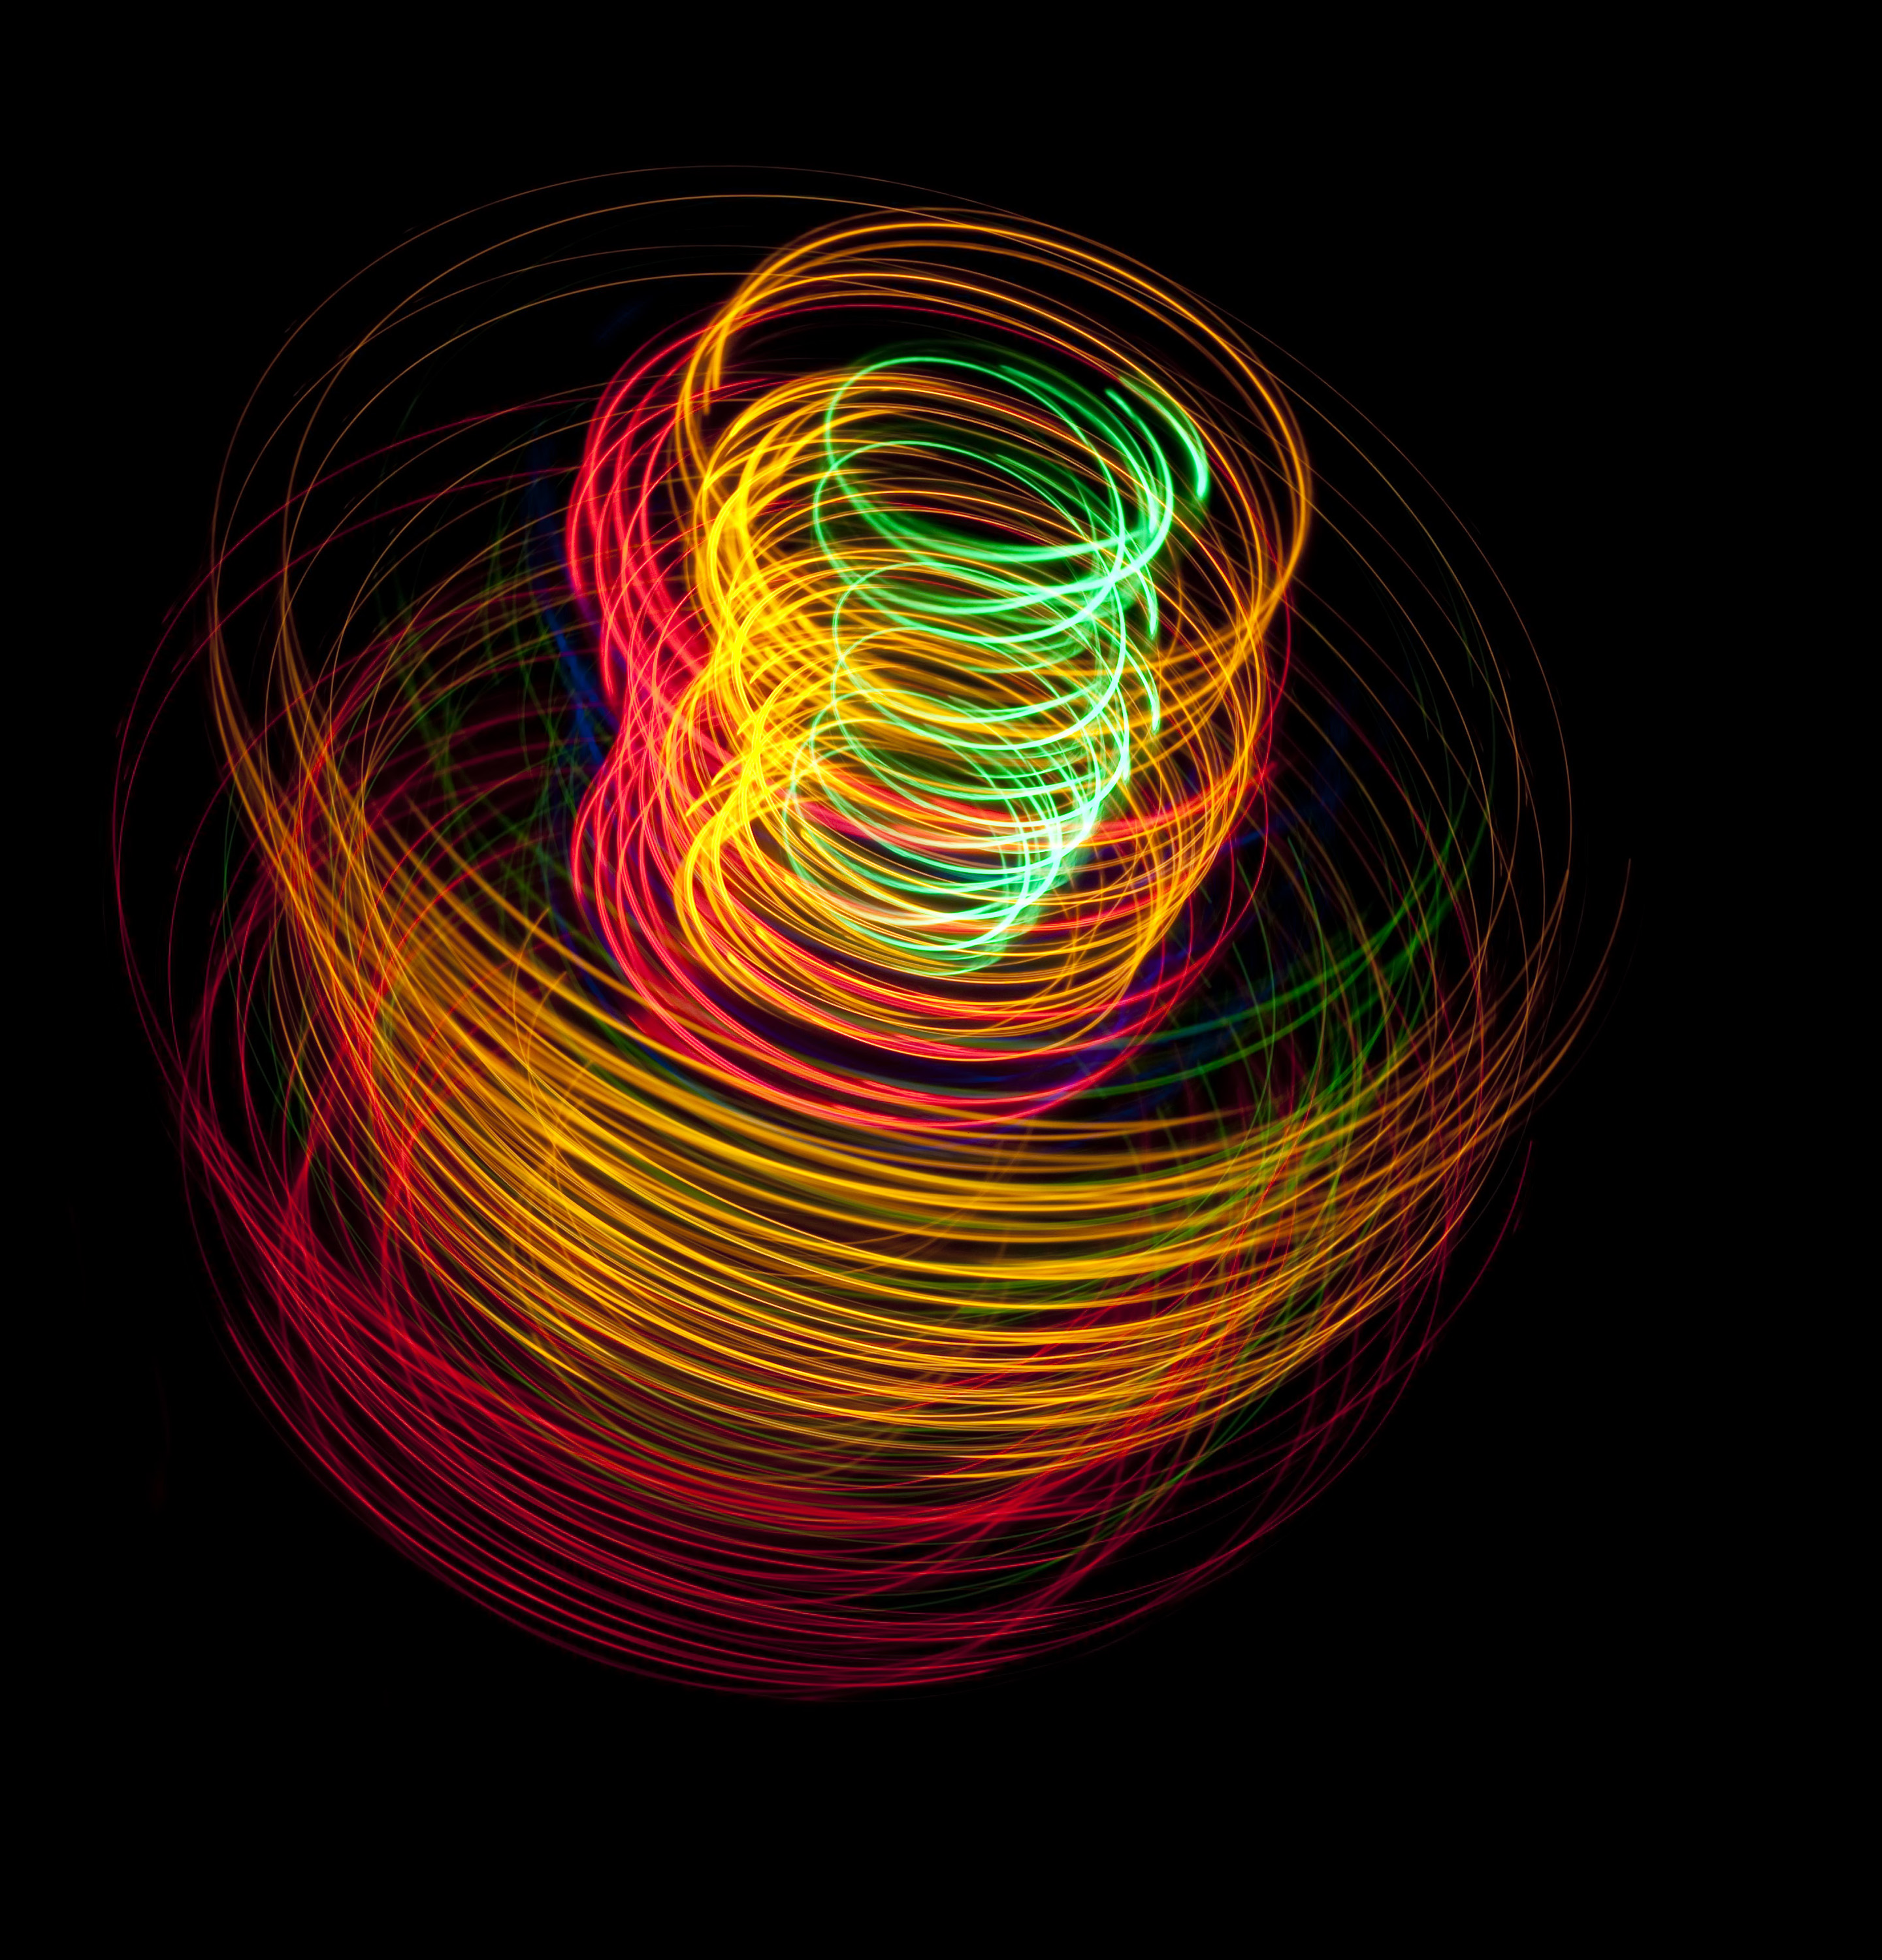 abstract coil of colorful light tracks